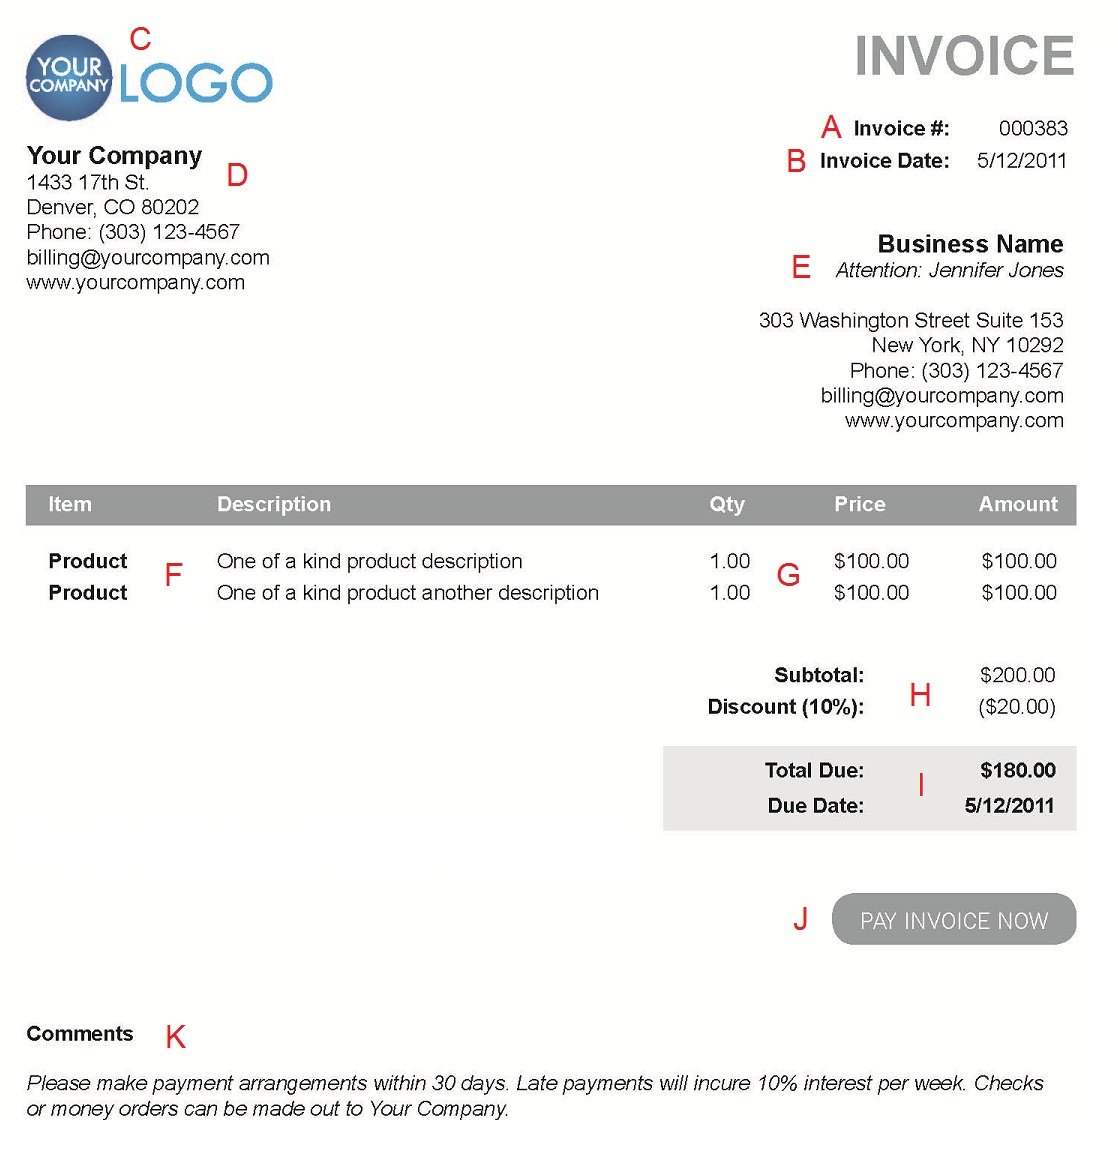 Amatospizzaus  Stunning The  Different Sections Of An Electronic Payment Invoice With Heavenly A  With Amazing Best Buy No Receipt Return Policy Also Deposit Receipt Template In Addition Walmart Battery Warranty Without Receipt And Hotel Receipt Template As Well As Blank Receipt Form Additionally Please Confirm Upon Receipt From Paysimplecom With Amatospizzaus  Heavenly The  Different Sections Of An Electronic Payment Invoice With Amazing A  And Stunning Best Buy No Receipt Return Policy Also Deposit Receipt Template In Addition Walmart Battery Warranty Without Receipt From Paysimplecom